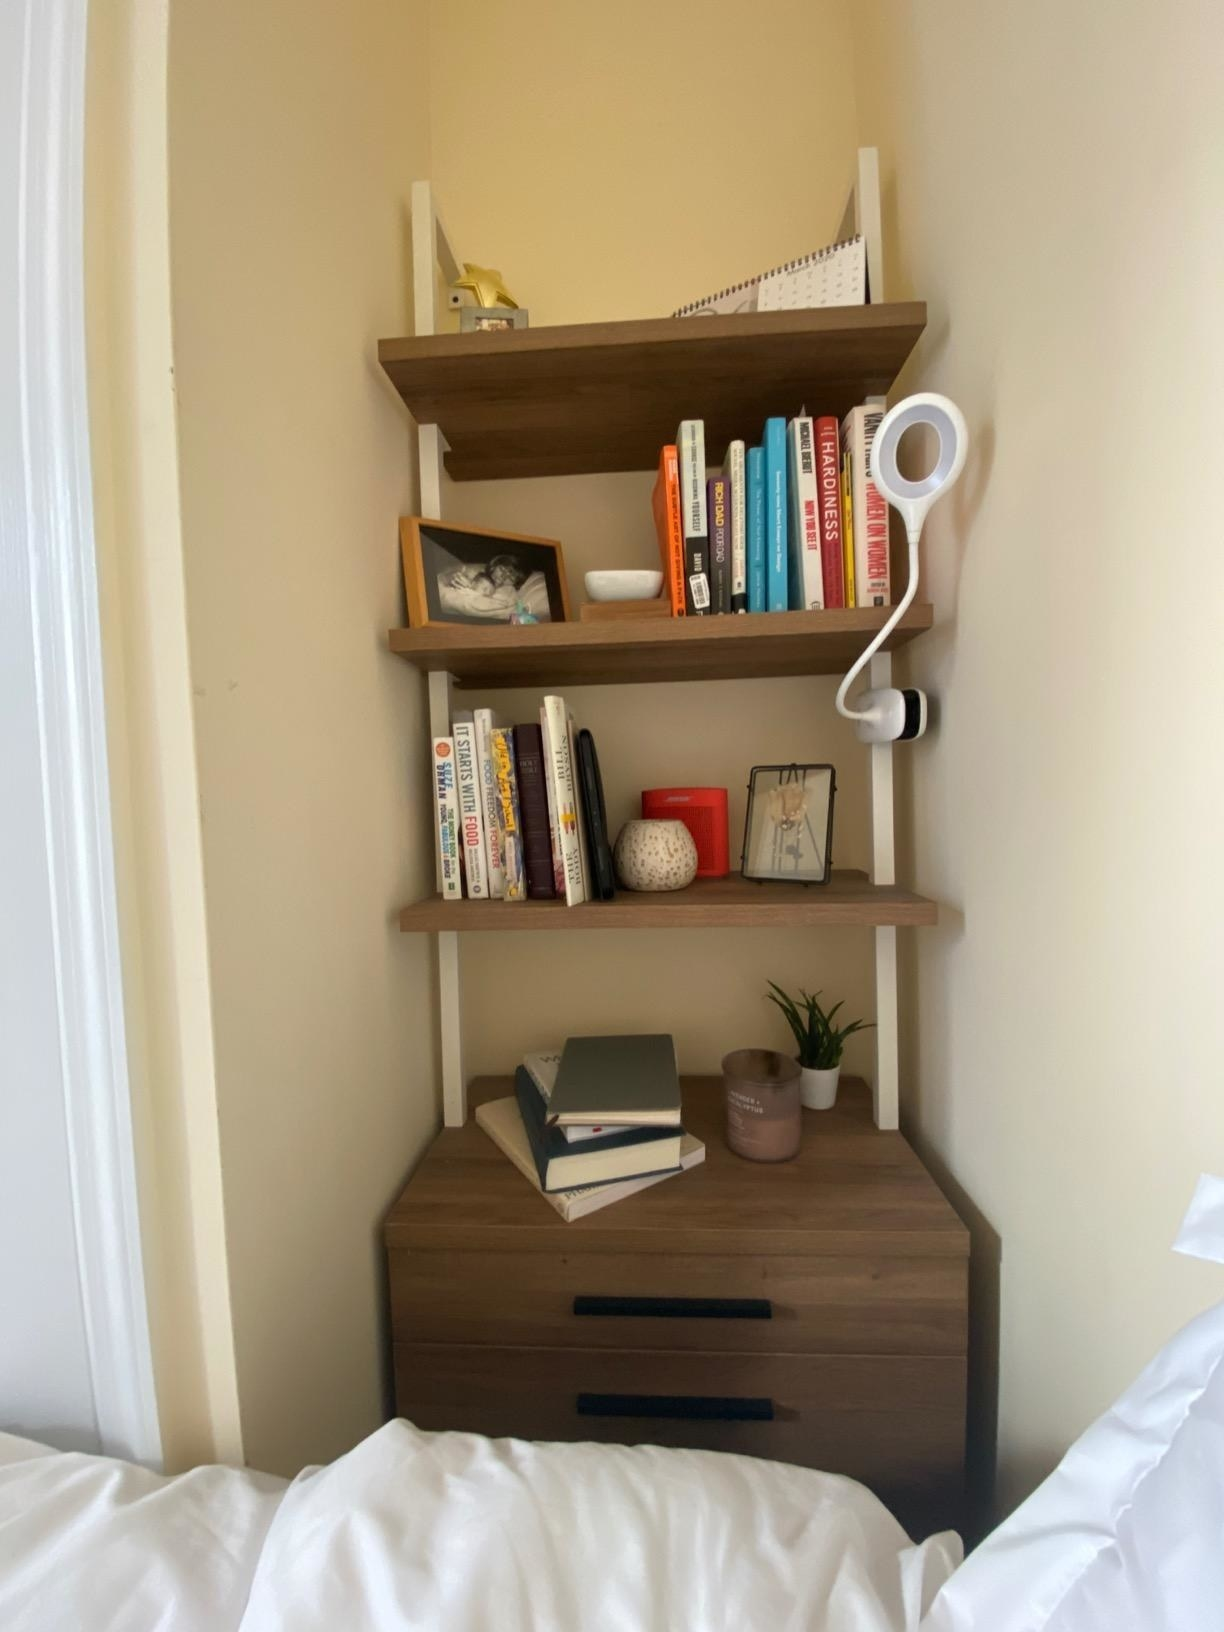 The bookshelf, mounted to a wall, with three wooden shelves between metal pipes, and a two-drawer dresser at the bottom